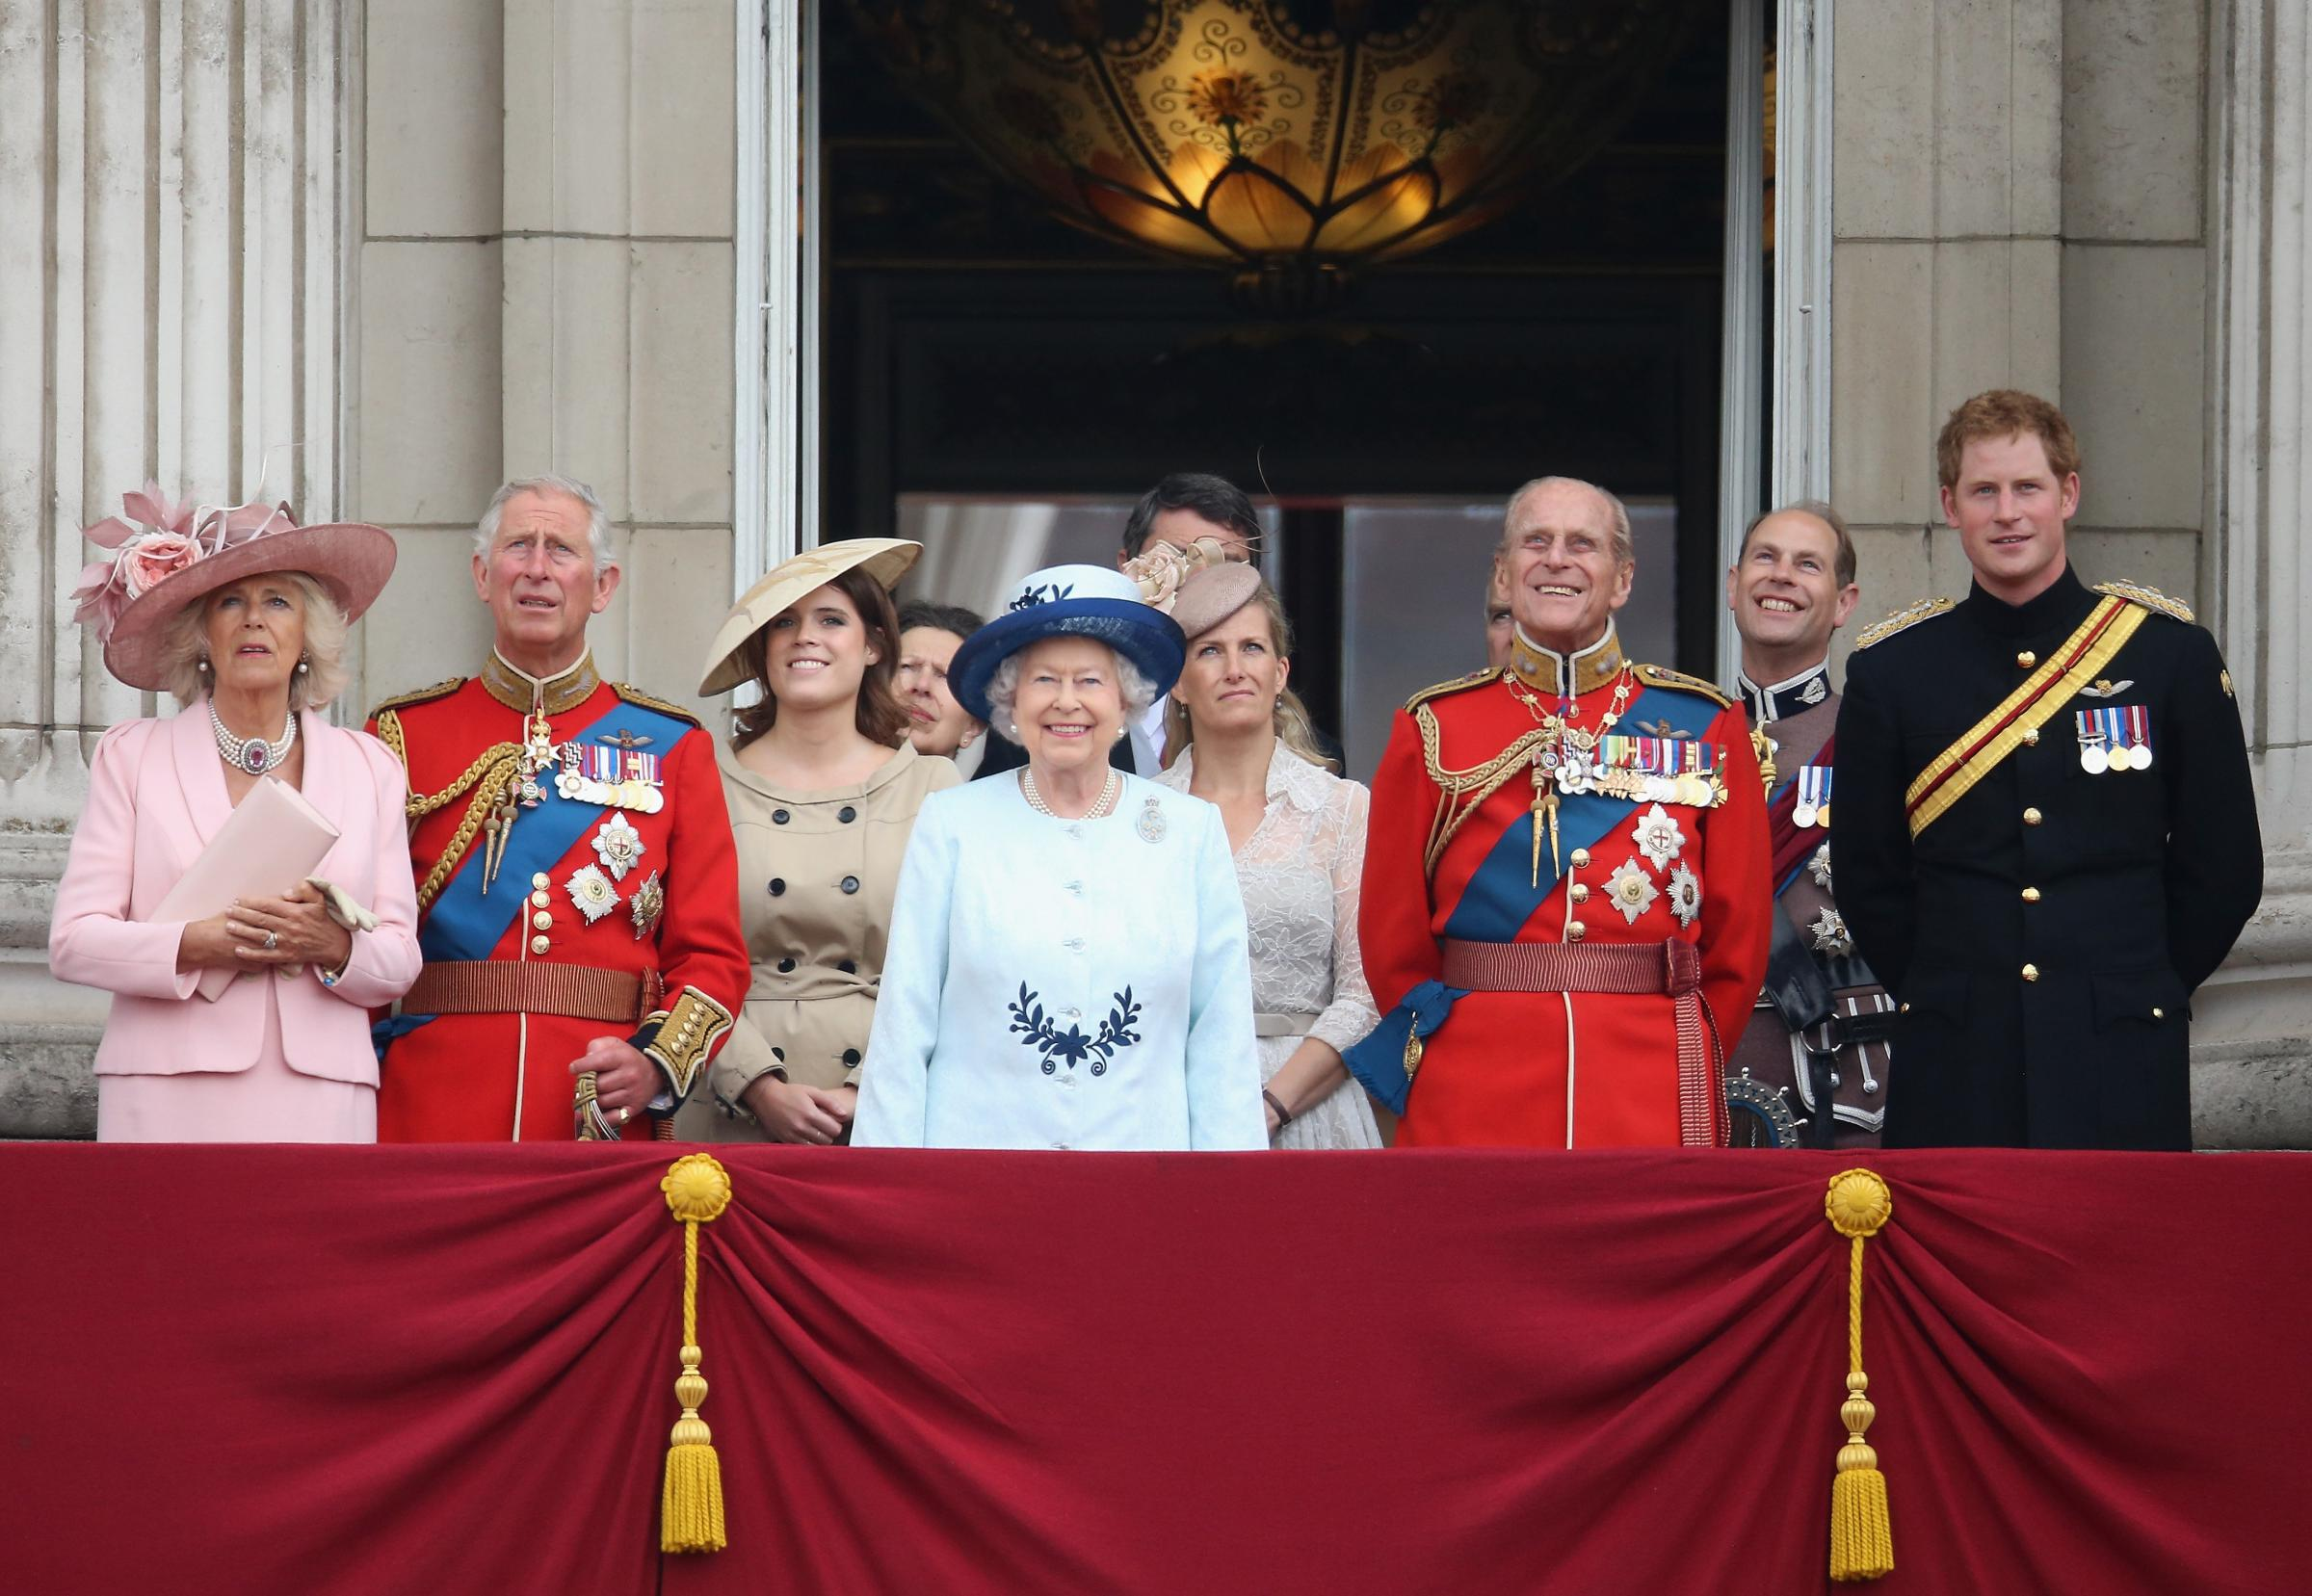 Stuart Cosgrove: When it comes to the royal family, Scotland is likely to compromise